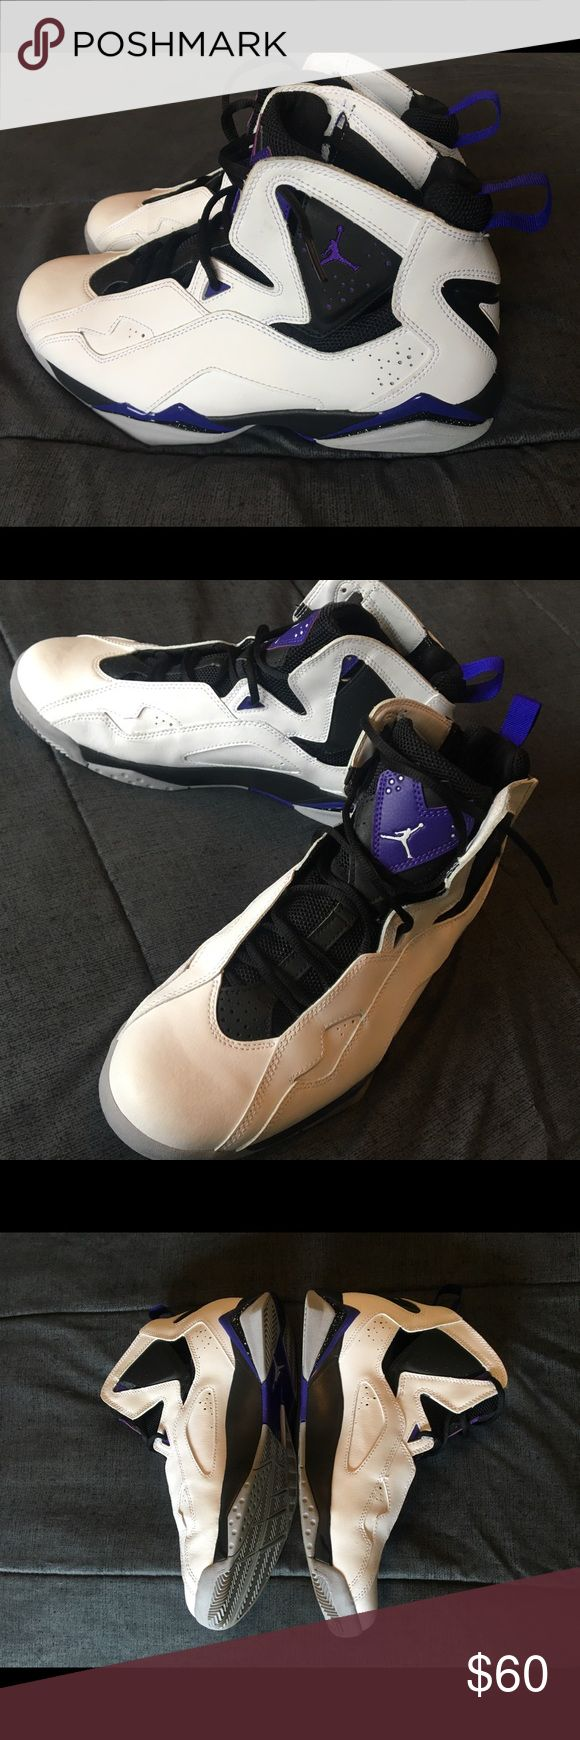 Jordan True Flight White-Gray-Black-Varsity Purple Jordan True Flight White-Gray-Black-Varsity Purple. Gently Used. Few Scuffs. Great condition. Make an offer 🙂. Jordan Shoes Athletic Shoes